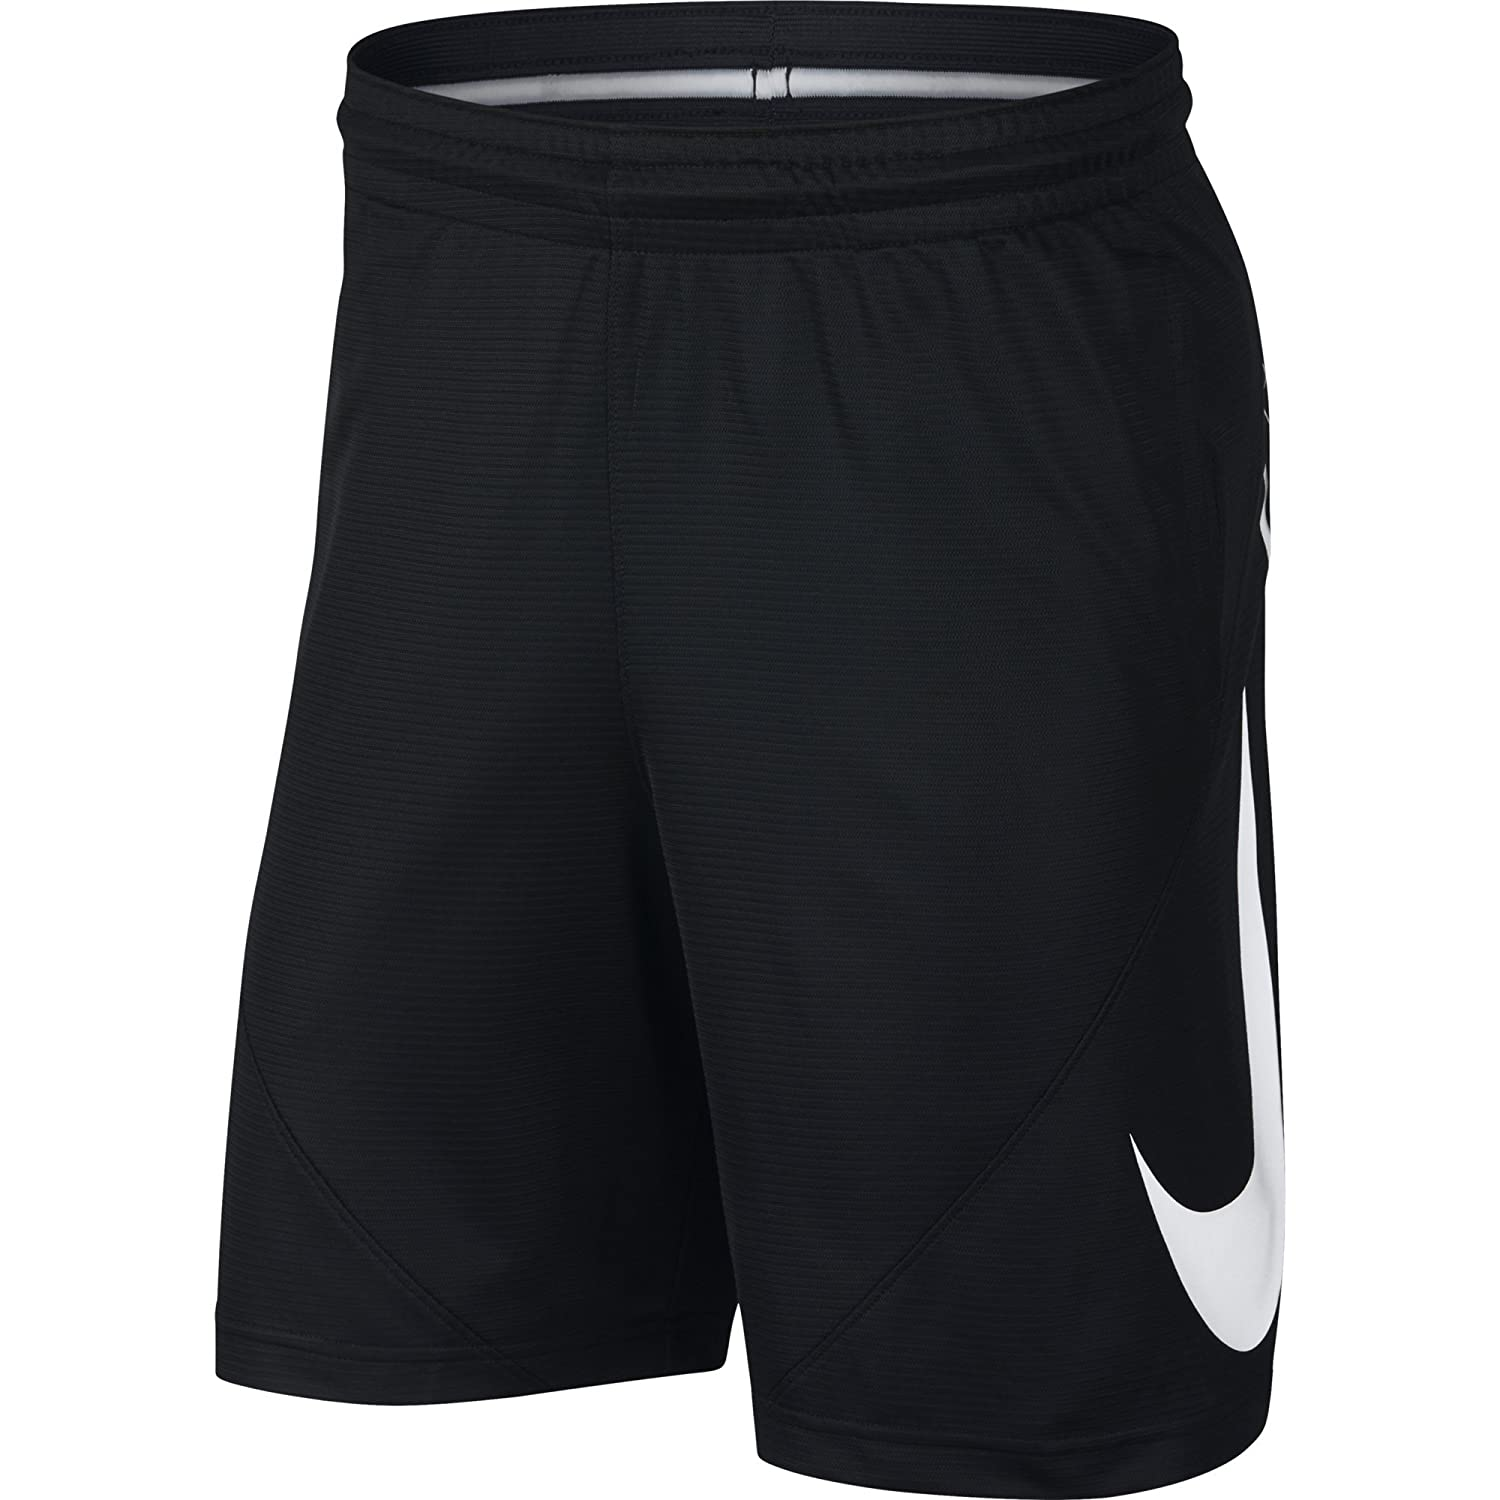 b3b9f57bdf Amazon.com : NIKE Men's HBR Basketball Shorts : Clothing